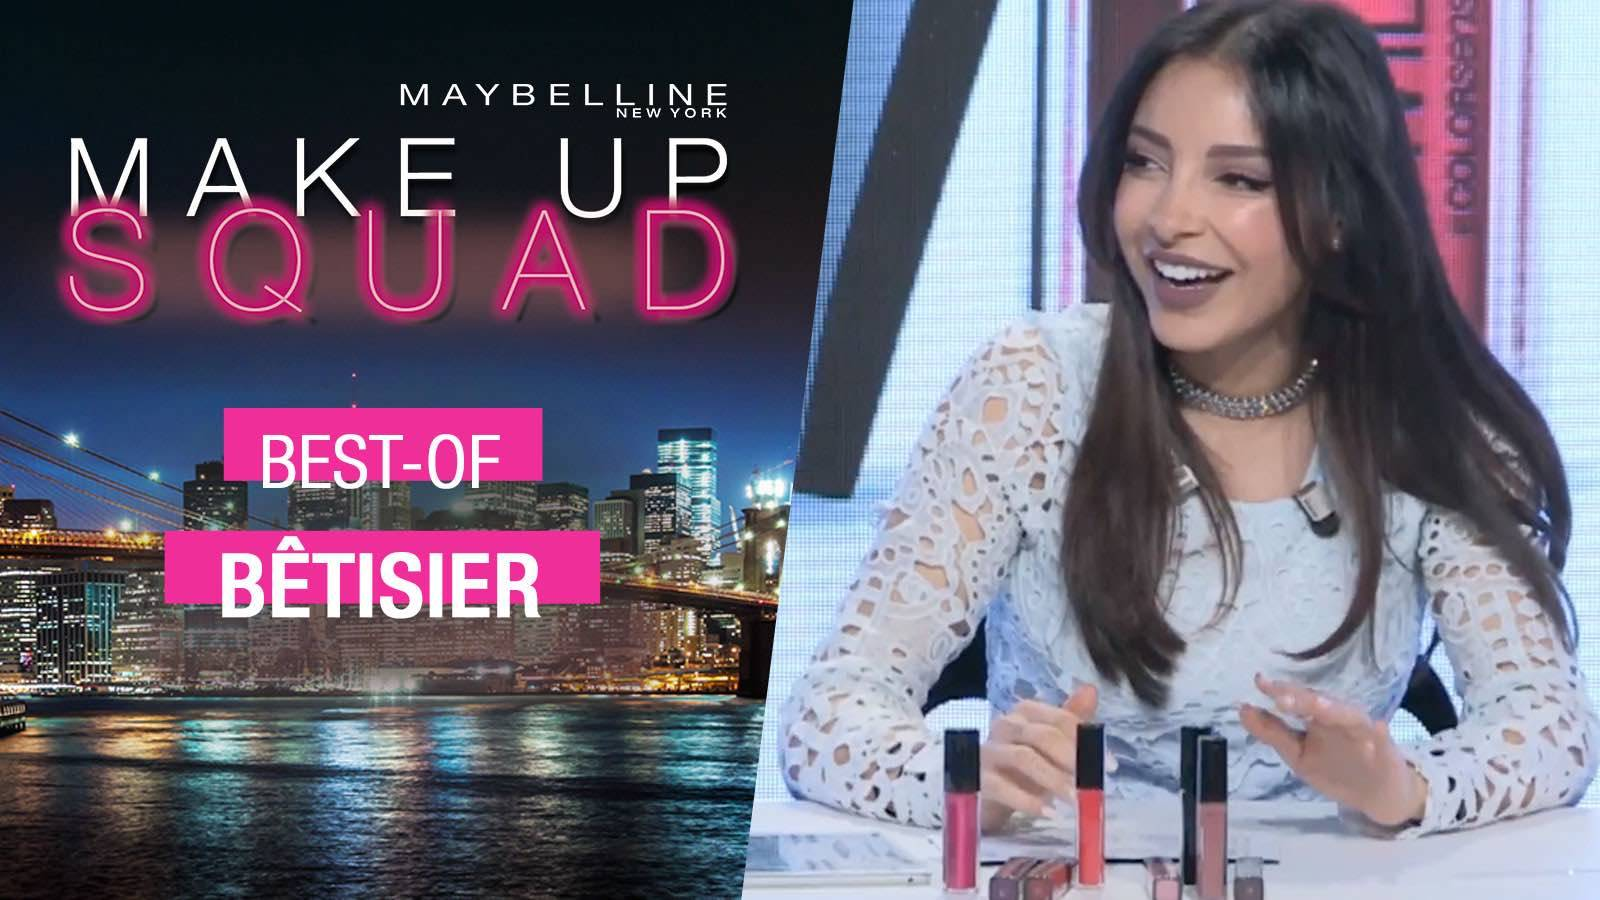 video-best-of-3-makeup-squad